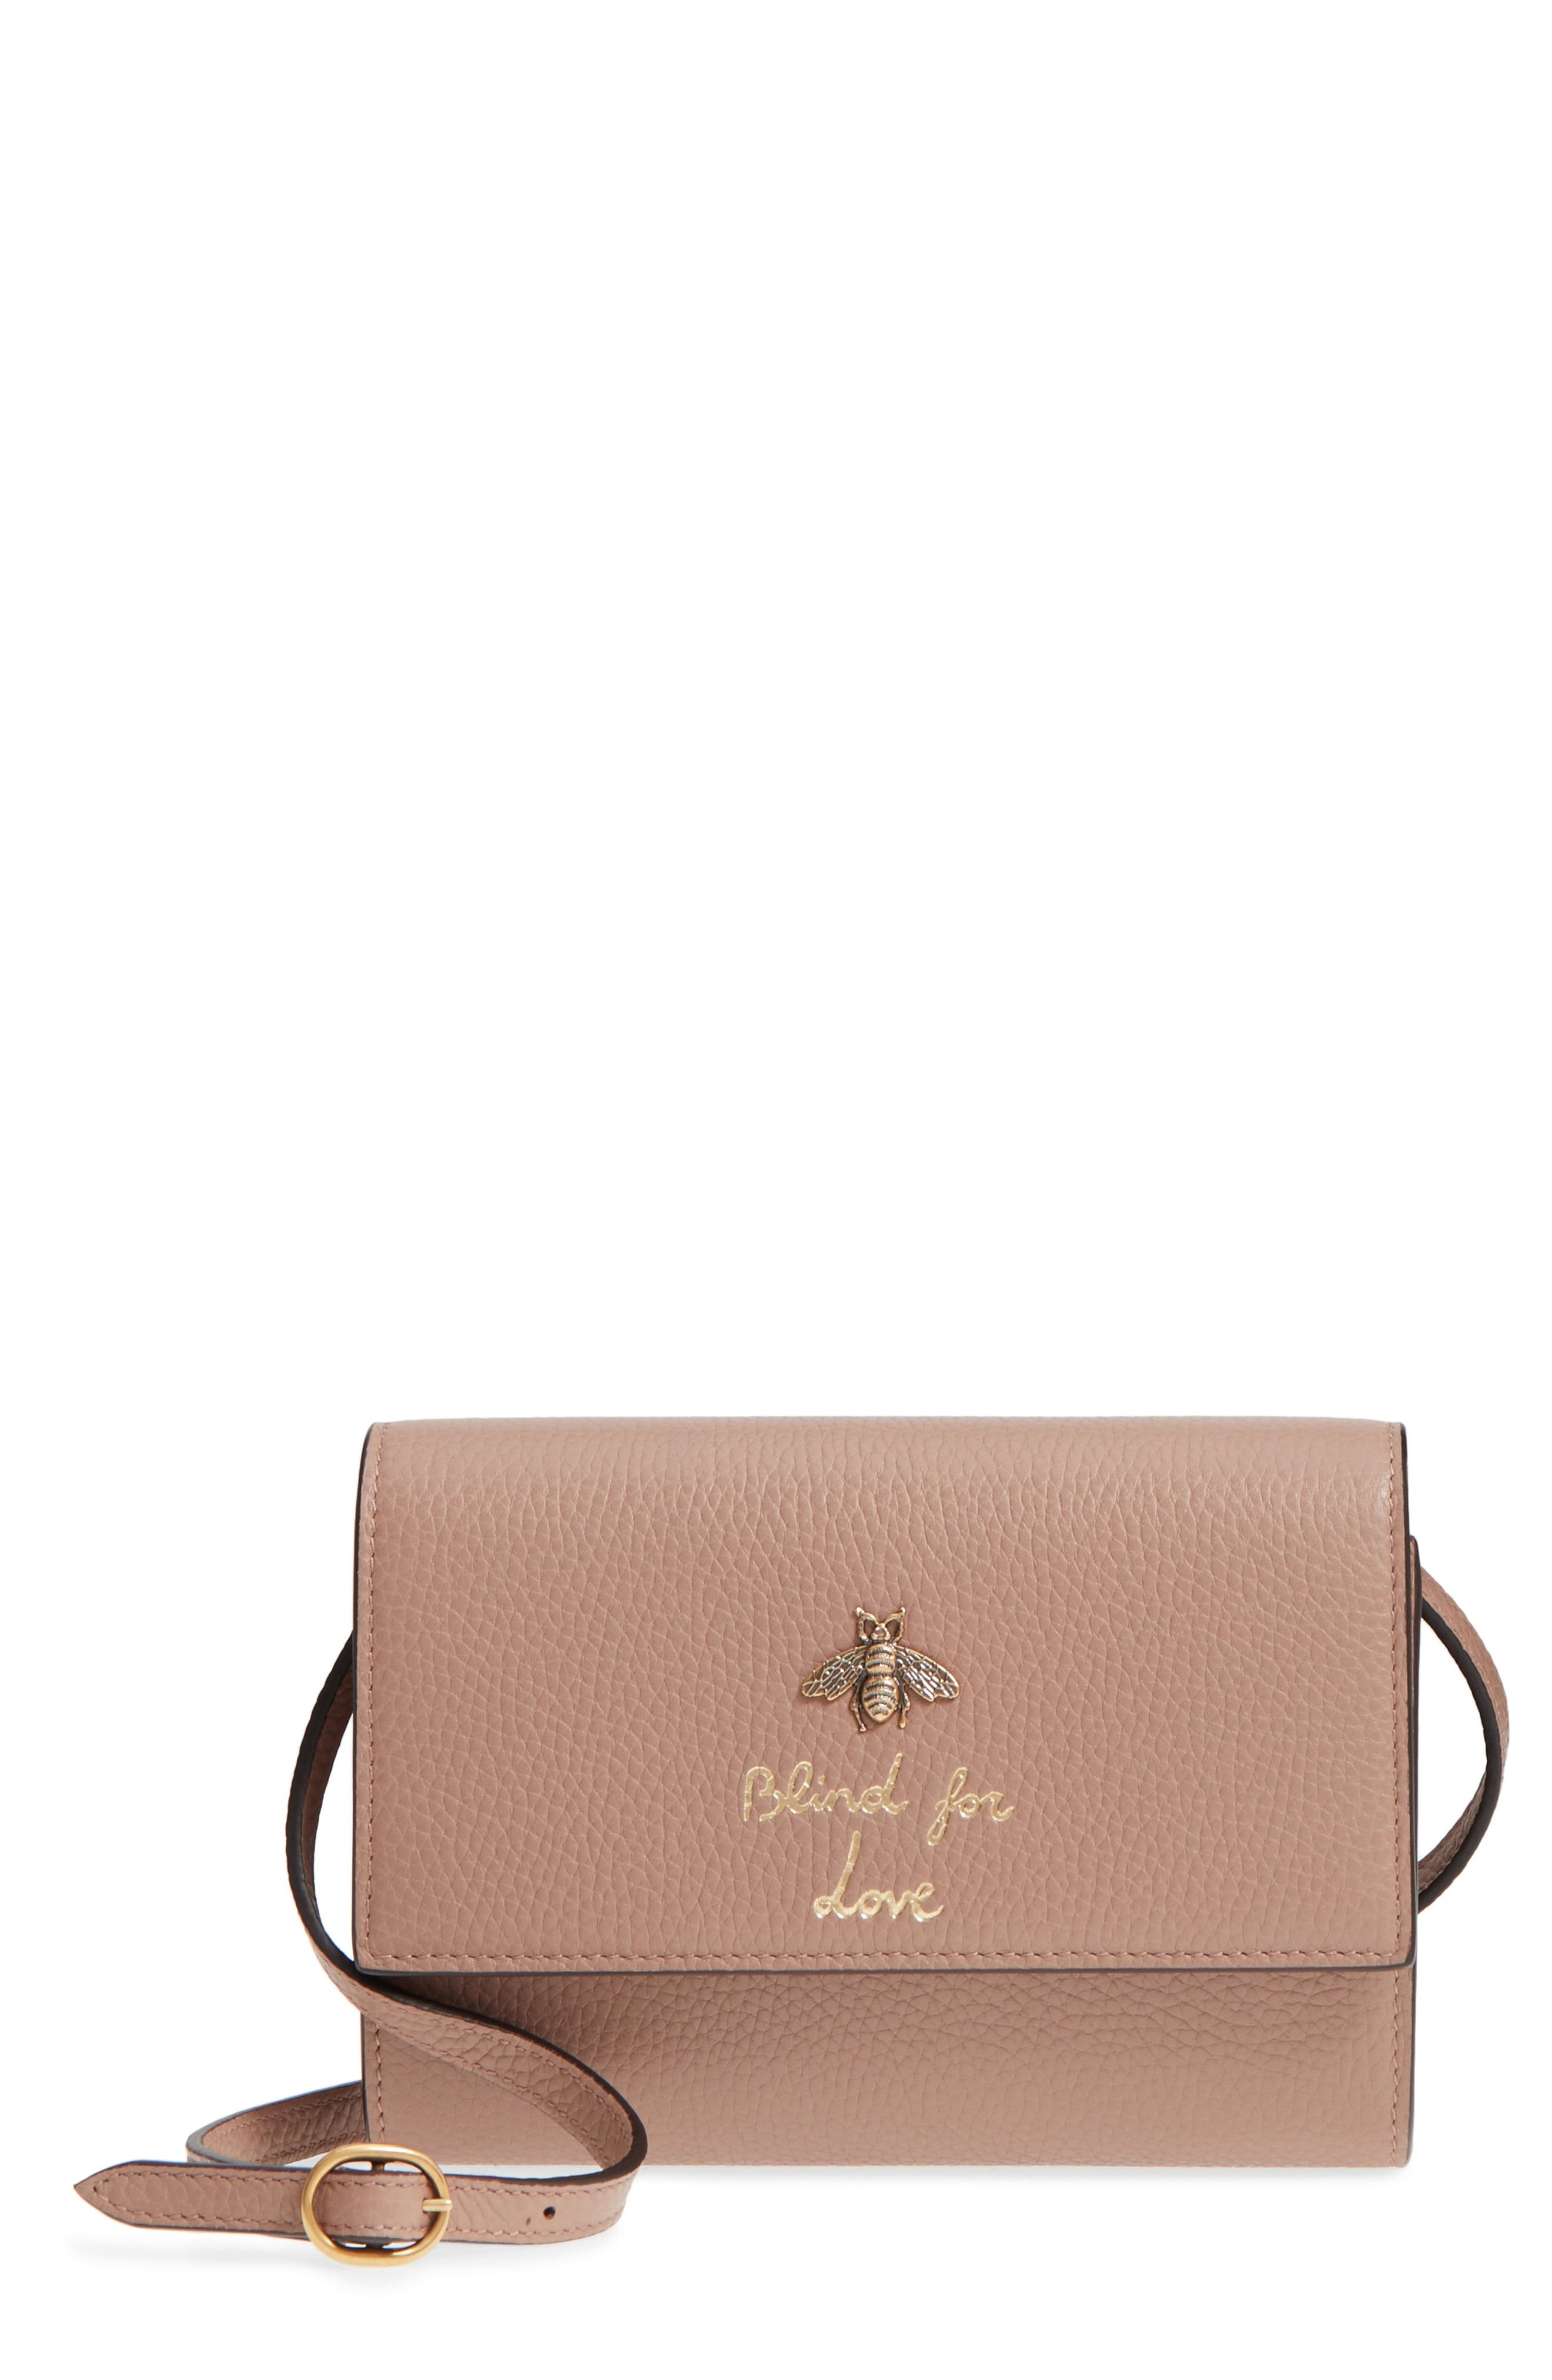 bfab5d1936a86f Spring & Summer Purses for Every Budget – Money Can Buy Lipstick